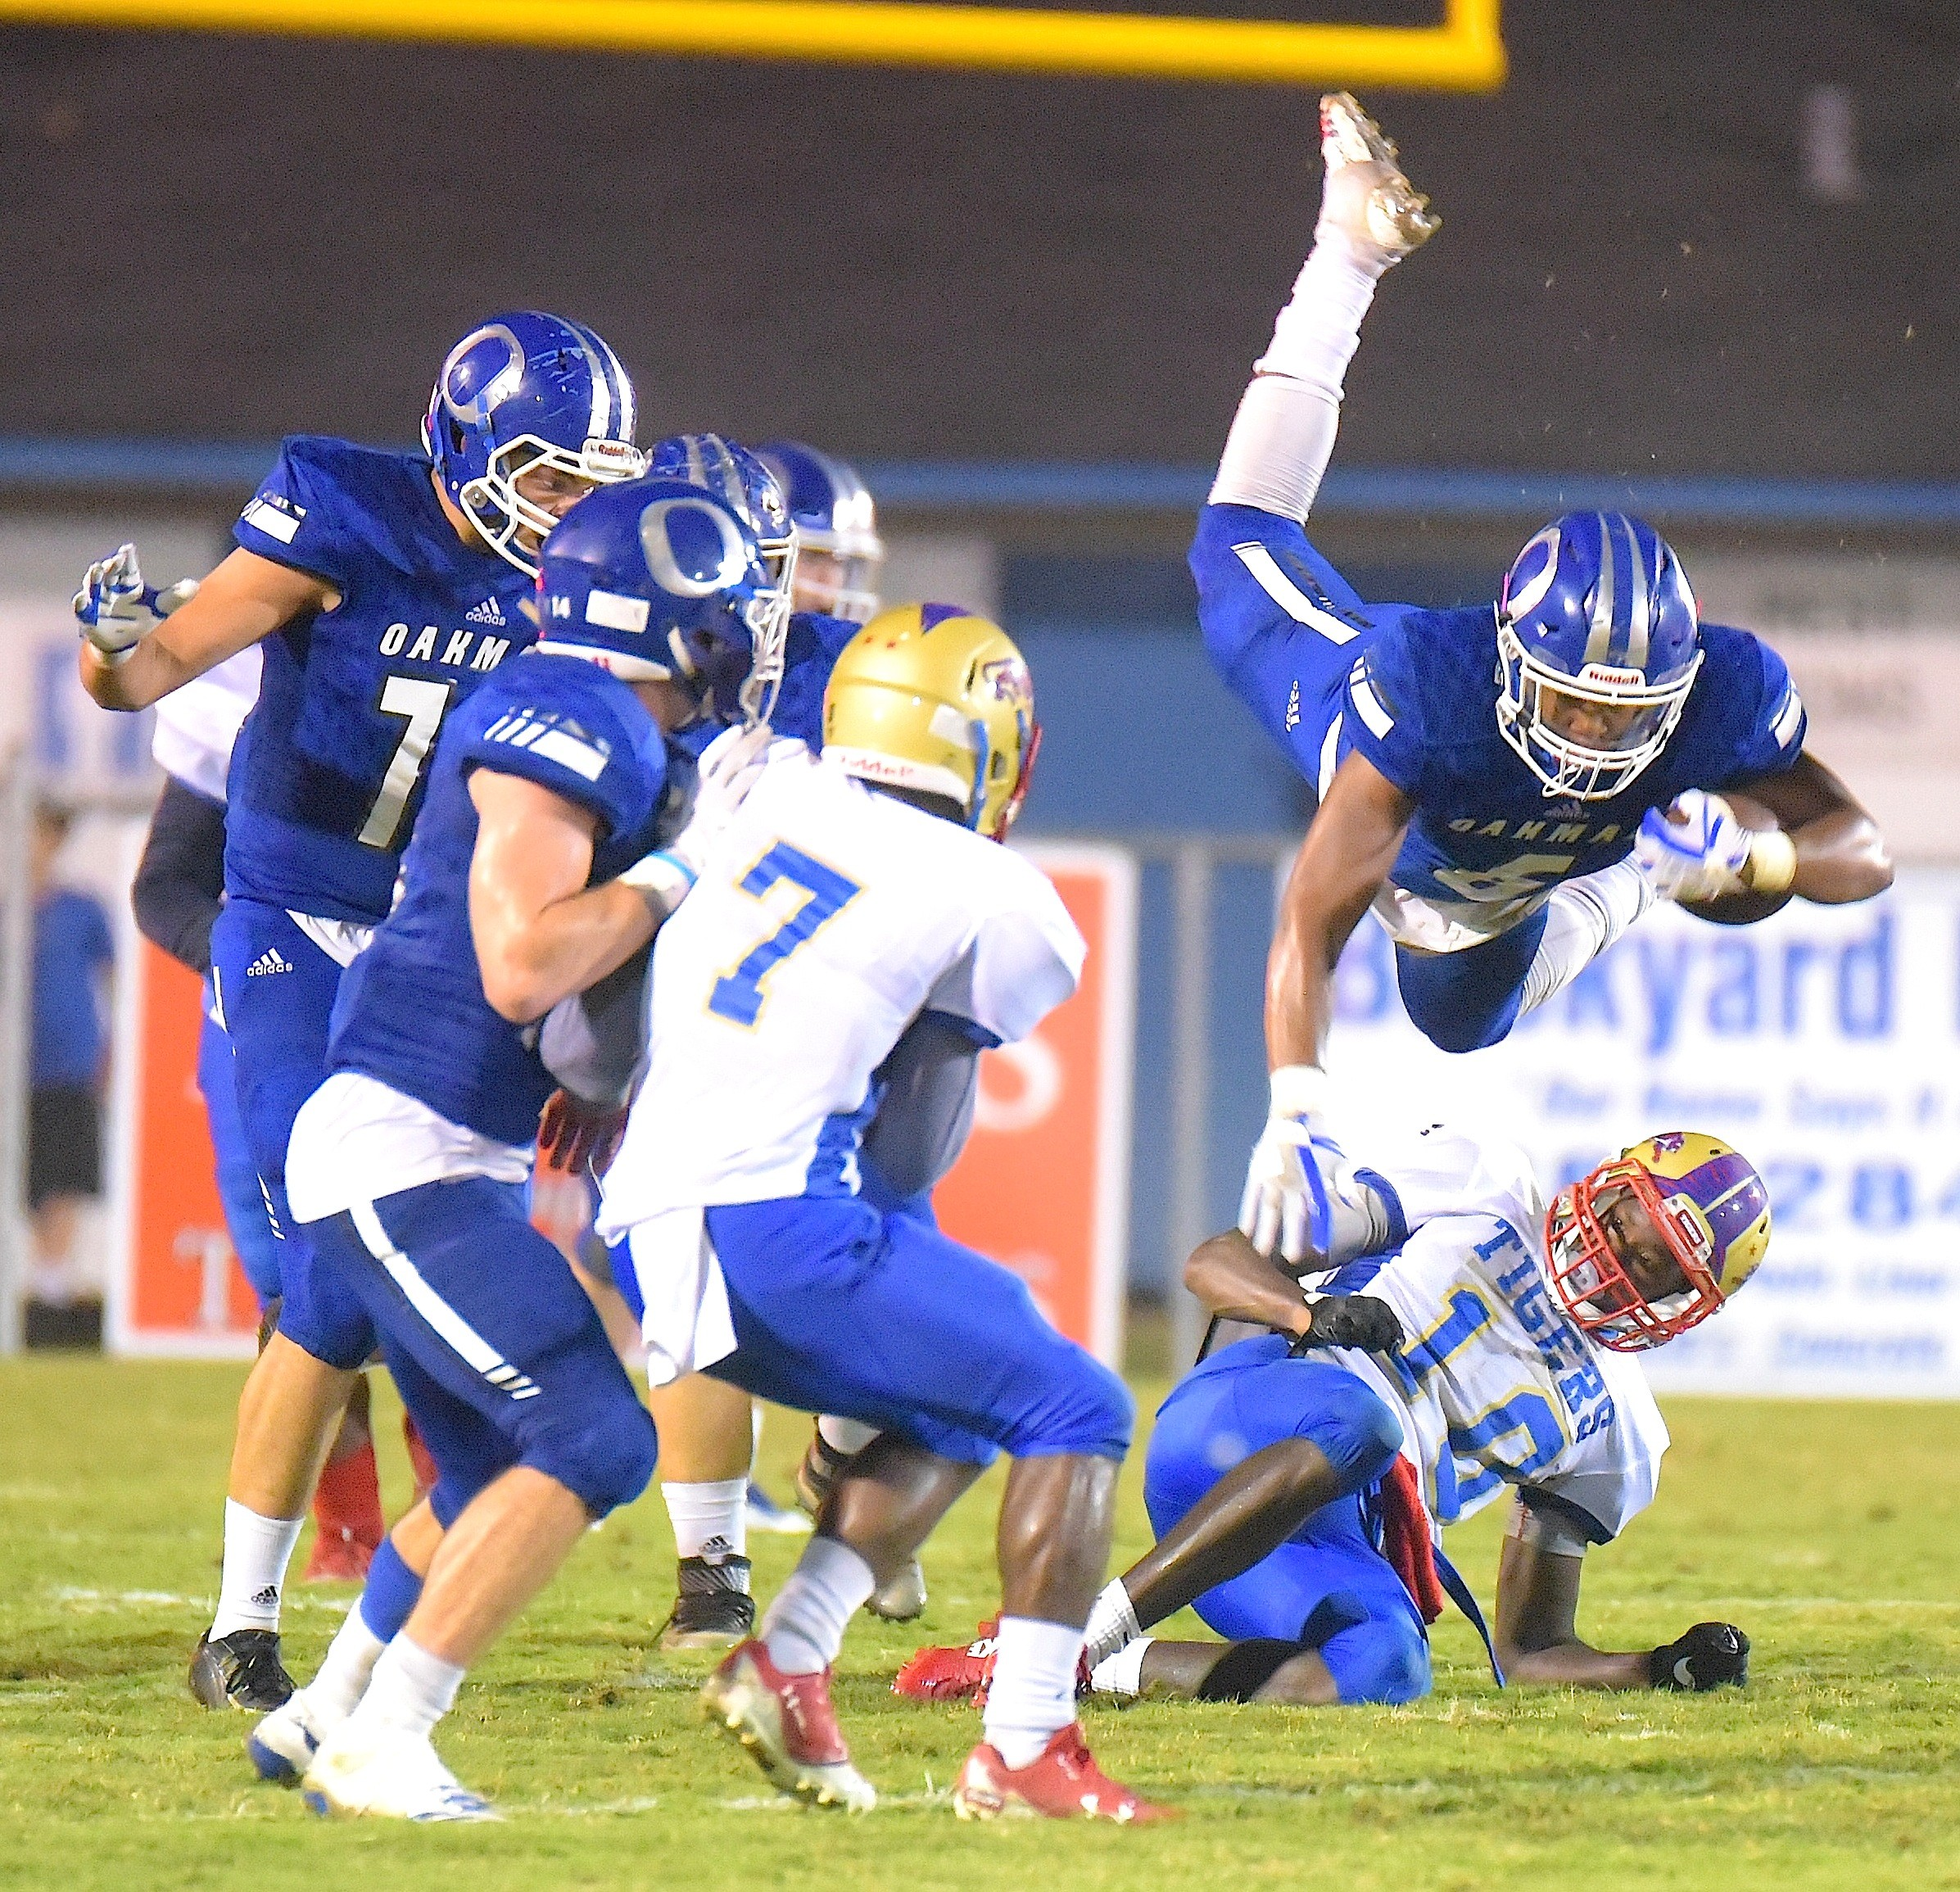 Oakman's Christian Hubbard (6) goes head over heels during the Wildcats' win over Greene County. Oakman moved to 3-0 on the season with a 21-20 victory. Hubbard rushed for 172 yards and a score.